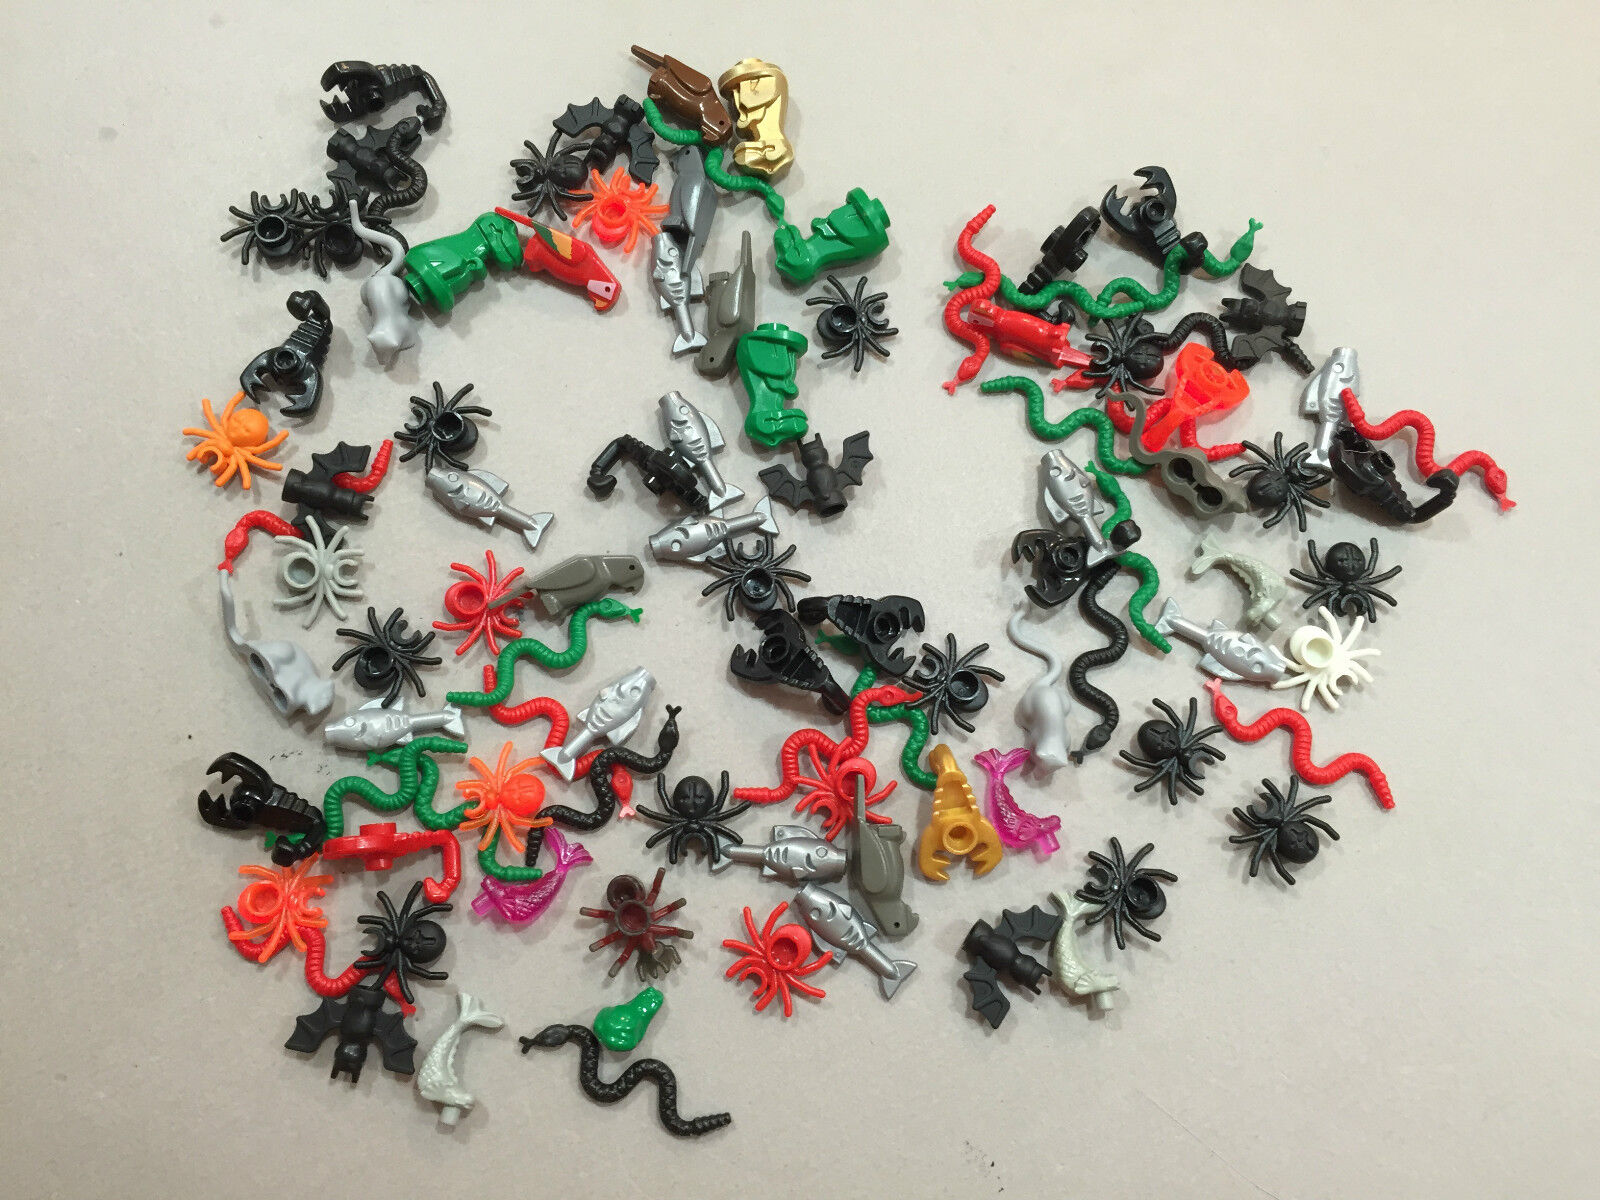 HUGE LOT OF 100 LEGO ANIMALS SPIDERS SPIDERS SPIDERS SNAKES SCORPIONS MINFIG D138 5cef21